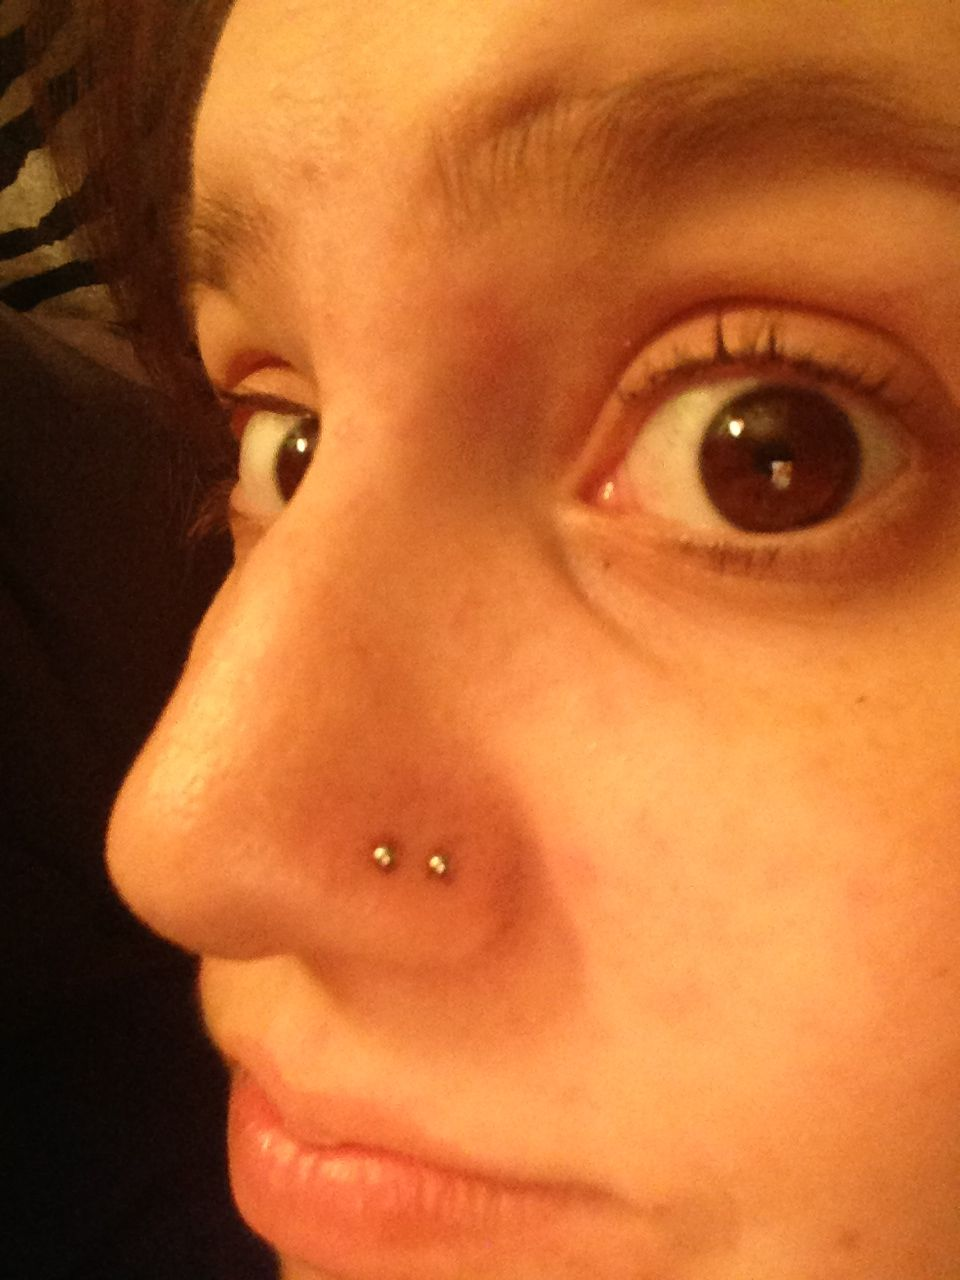 Double nose piercing both sides  Double nose piercing  Piercings  Pinterest  ピアス